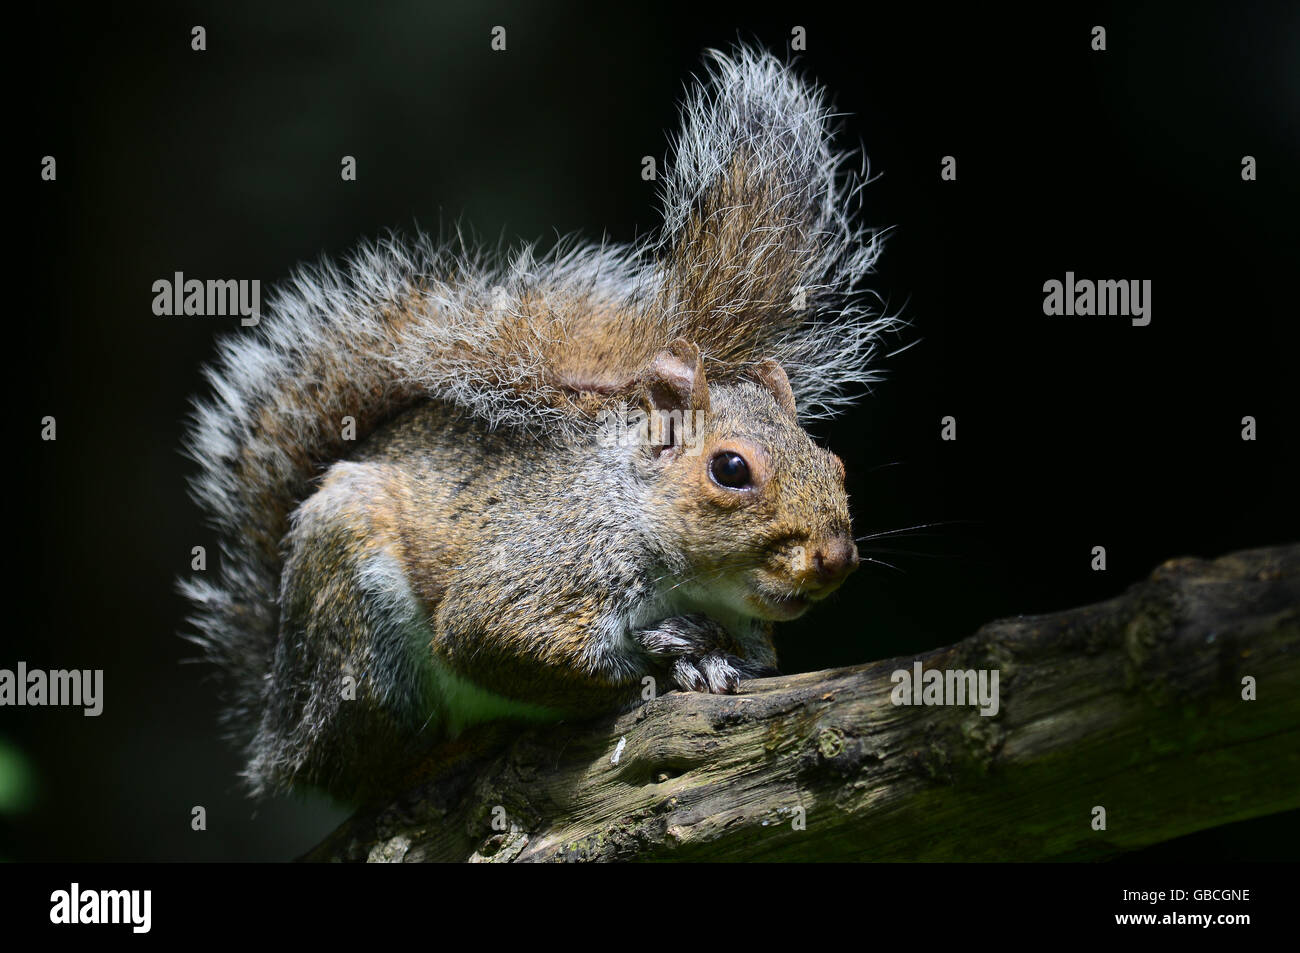 A grey squirrel on a log UK - Stock Image